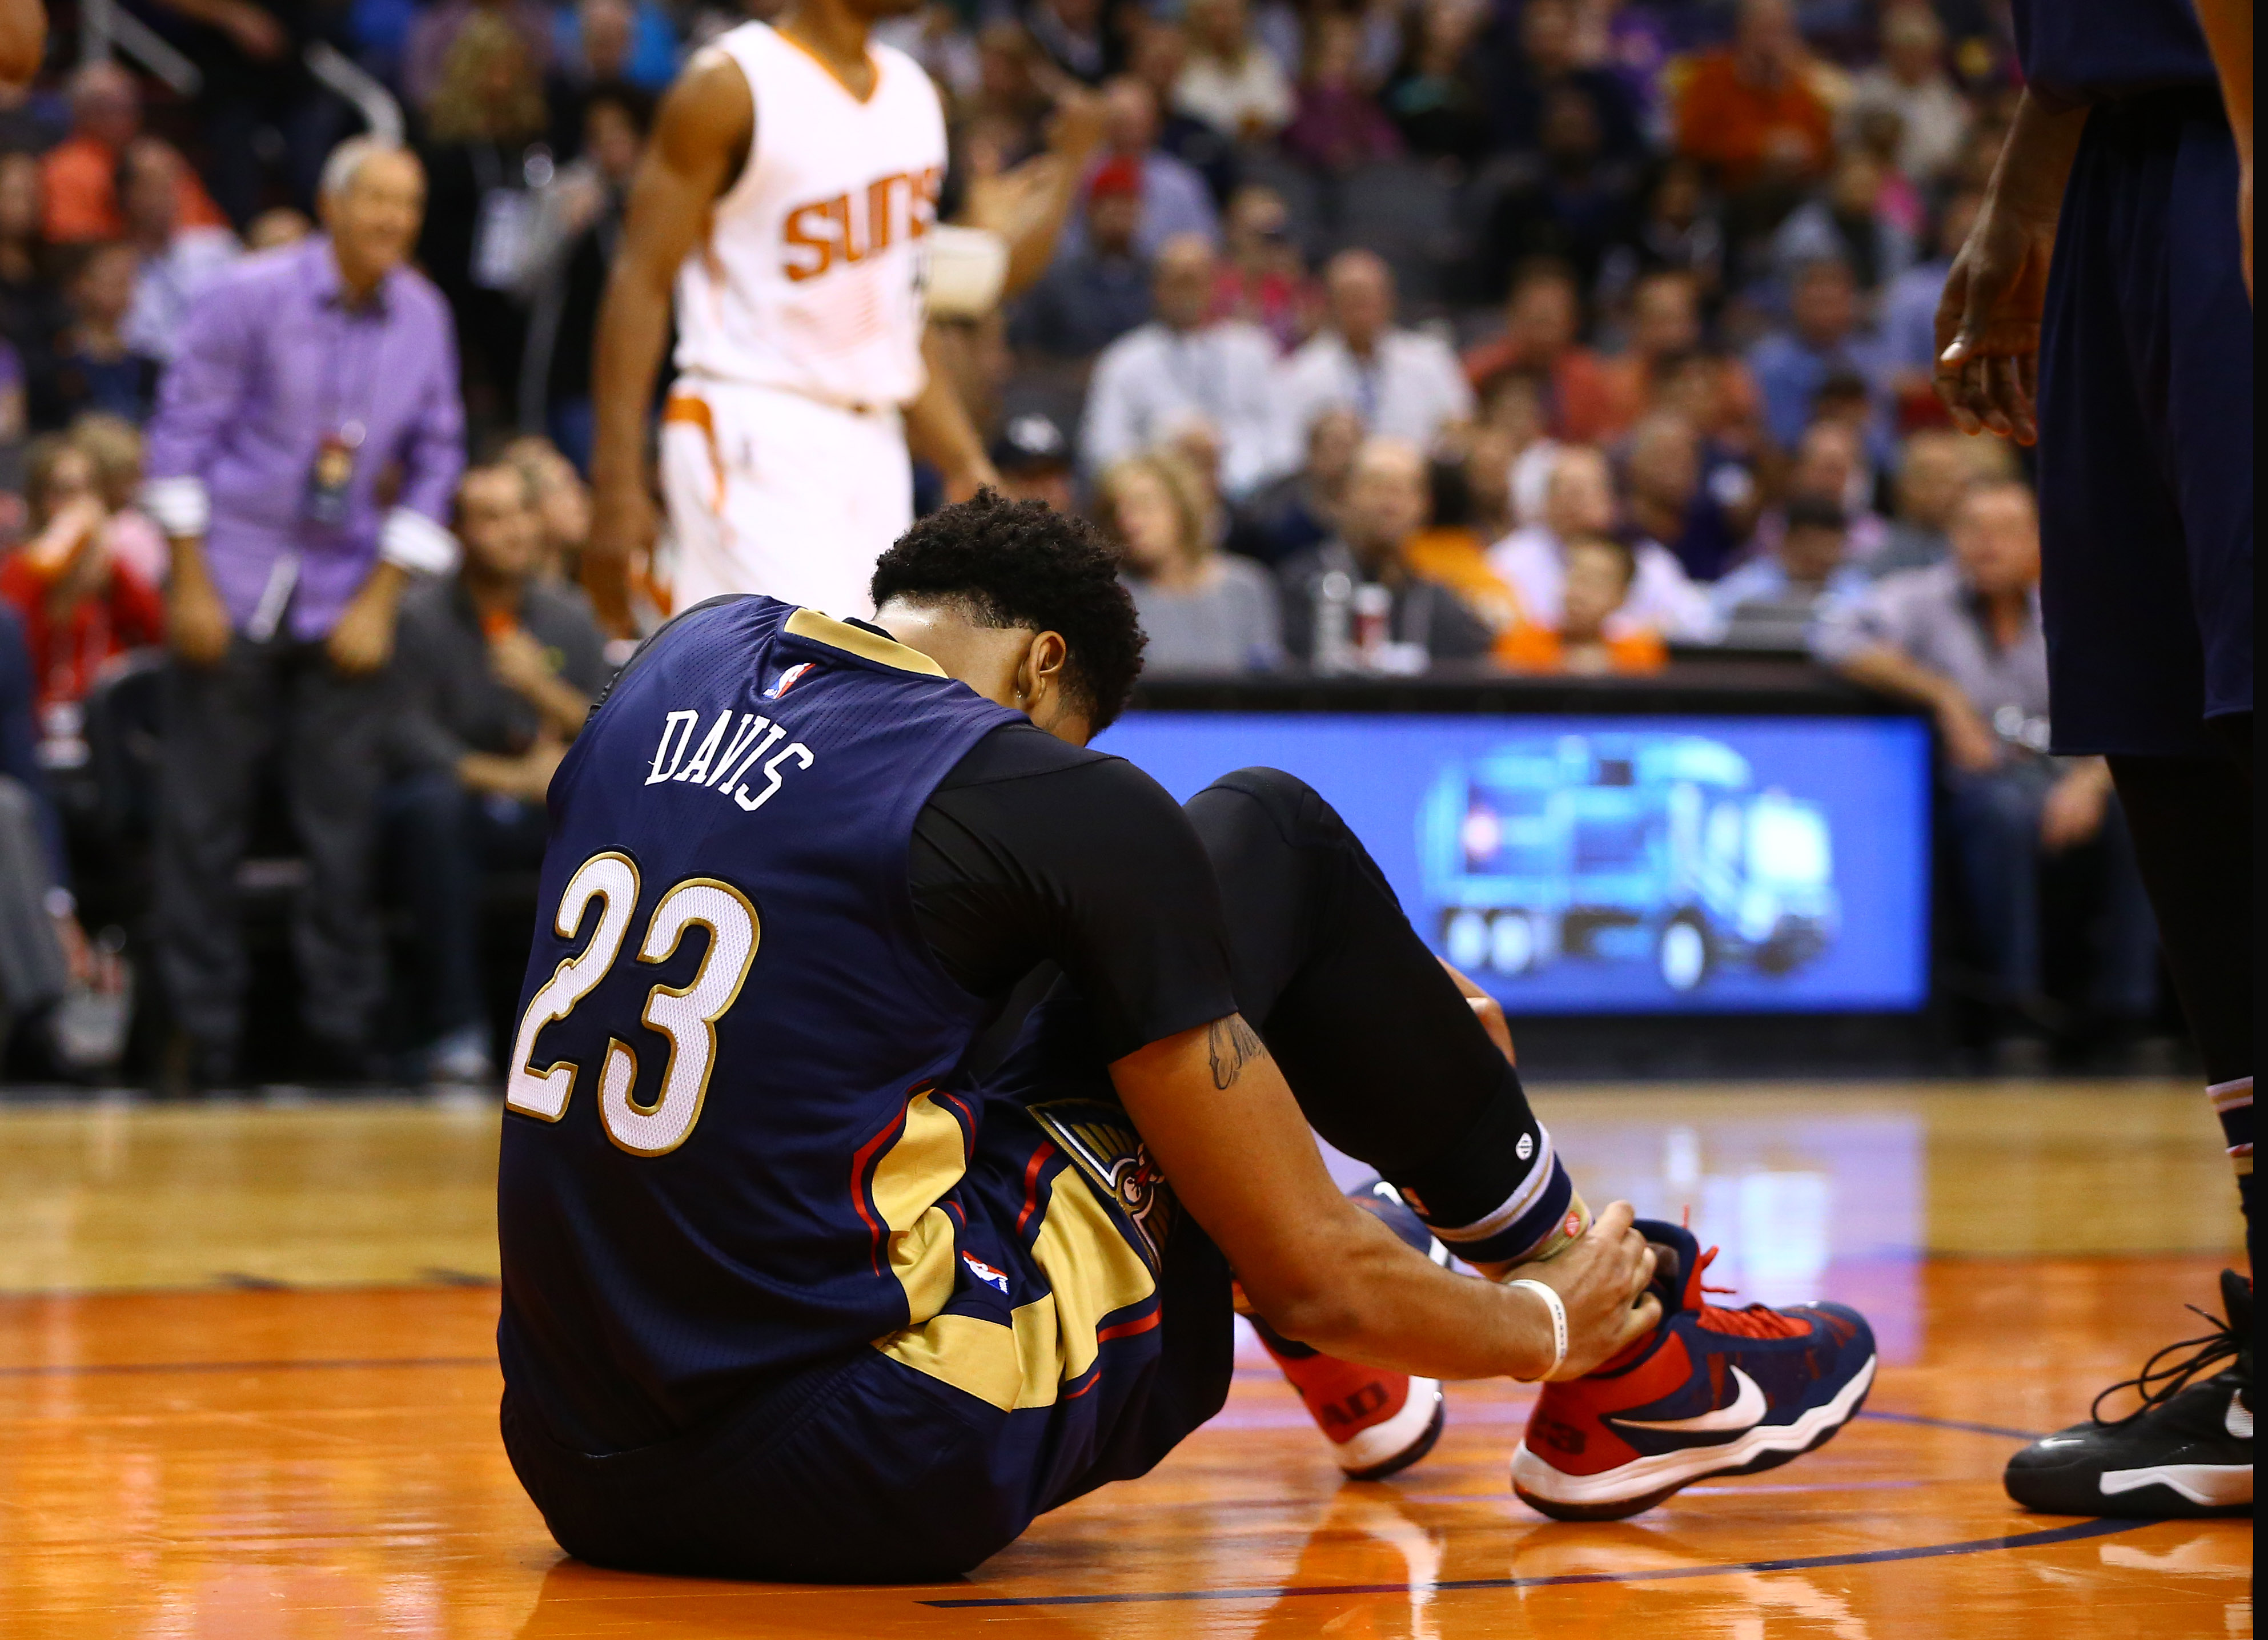 8952263-nba-new-orleans-pelicans-at-phoenix-suns